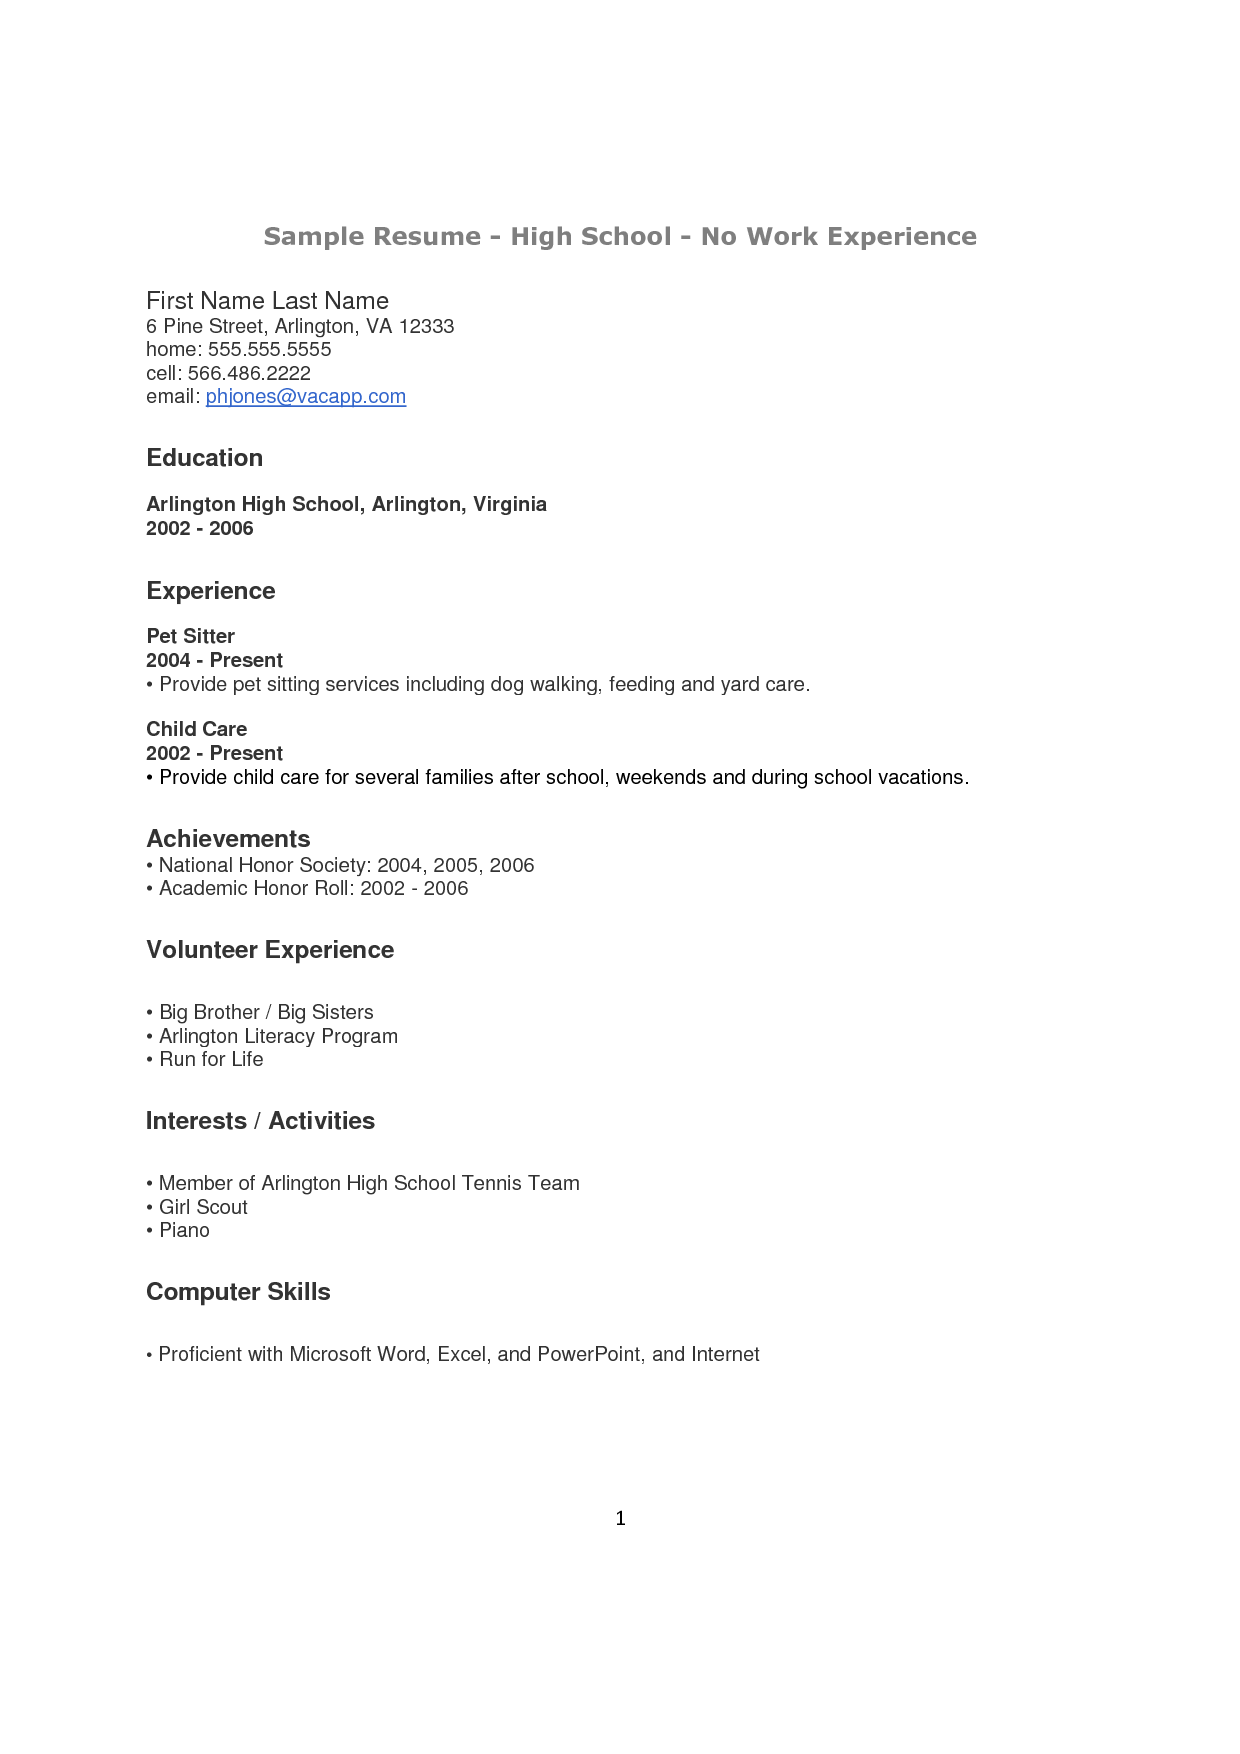 Resume For High School Student with No Work Experience - Resume ...